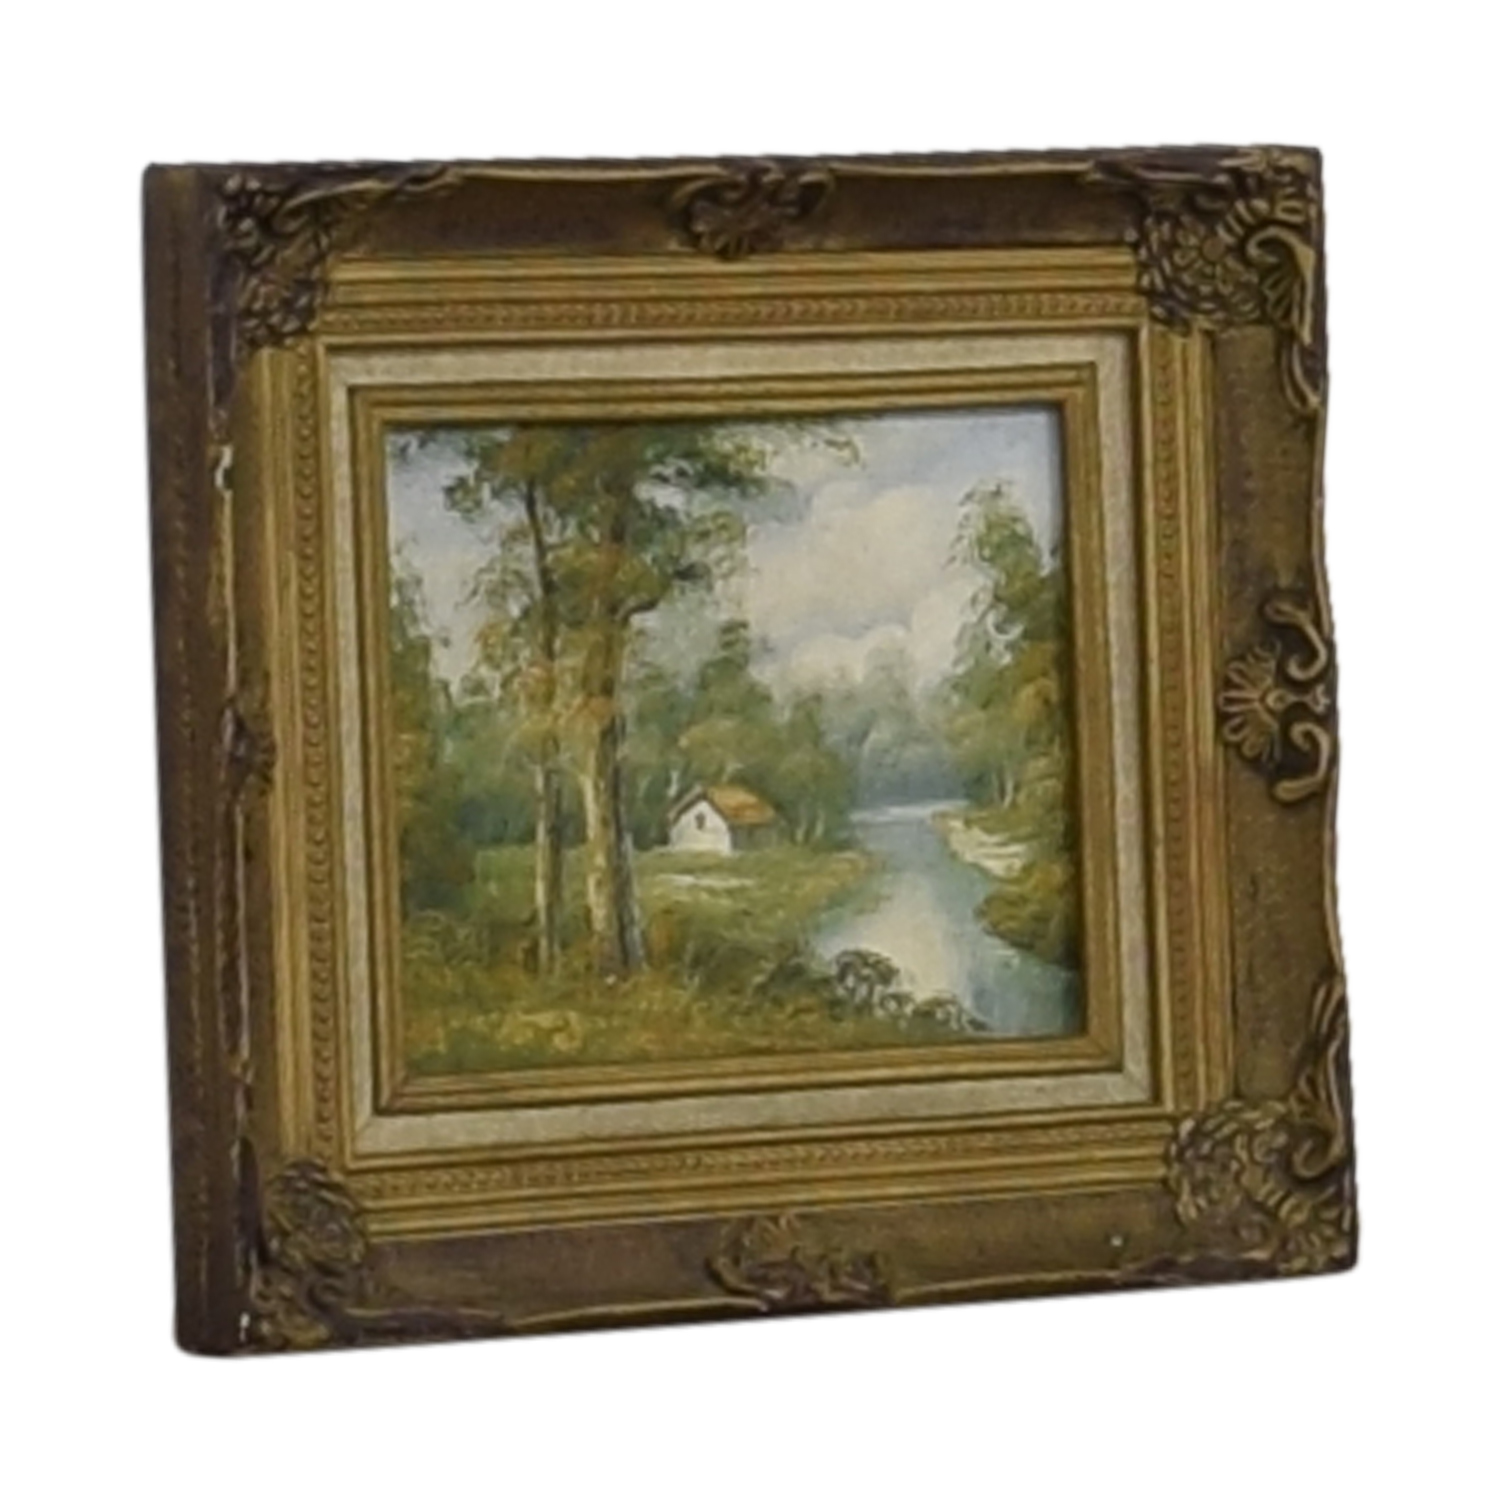 Framed Landscape Wall Art